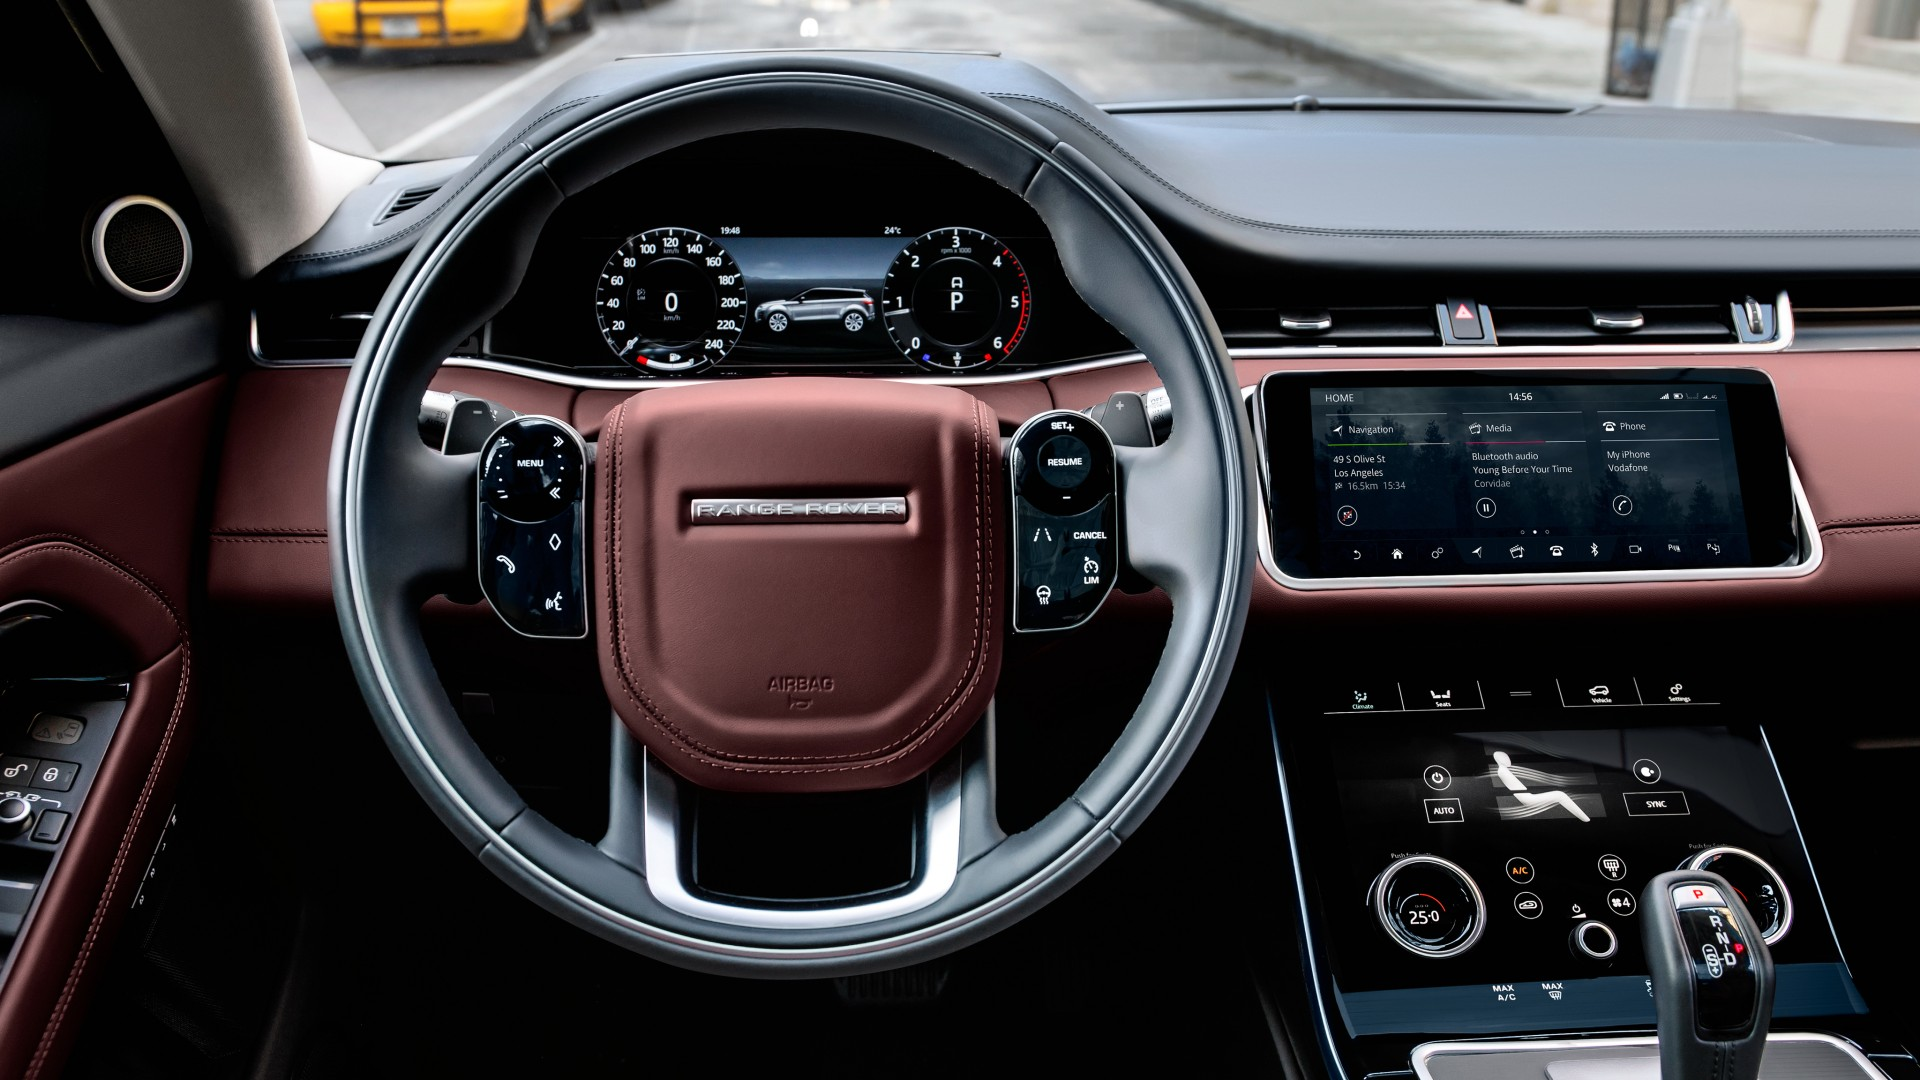 Wallpaper Range Rover Evoque Interior Suv 2019 Cars 4k